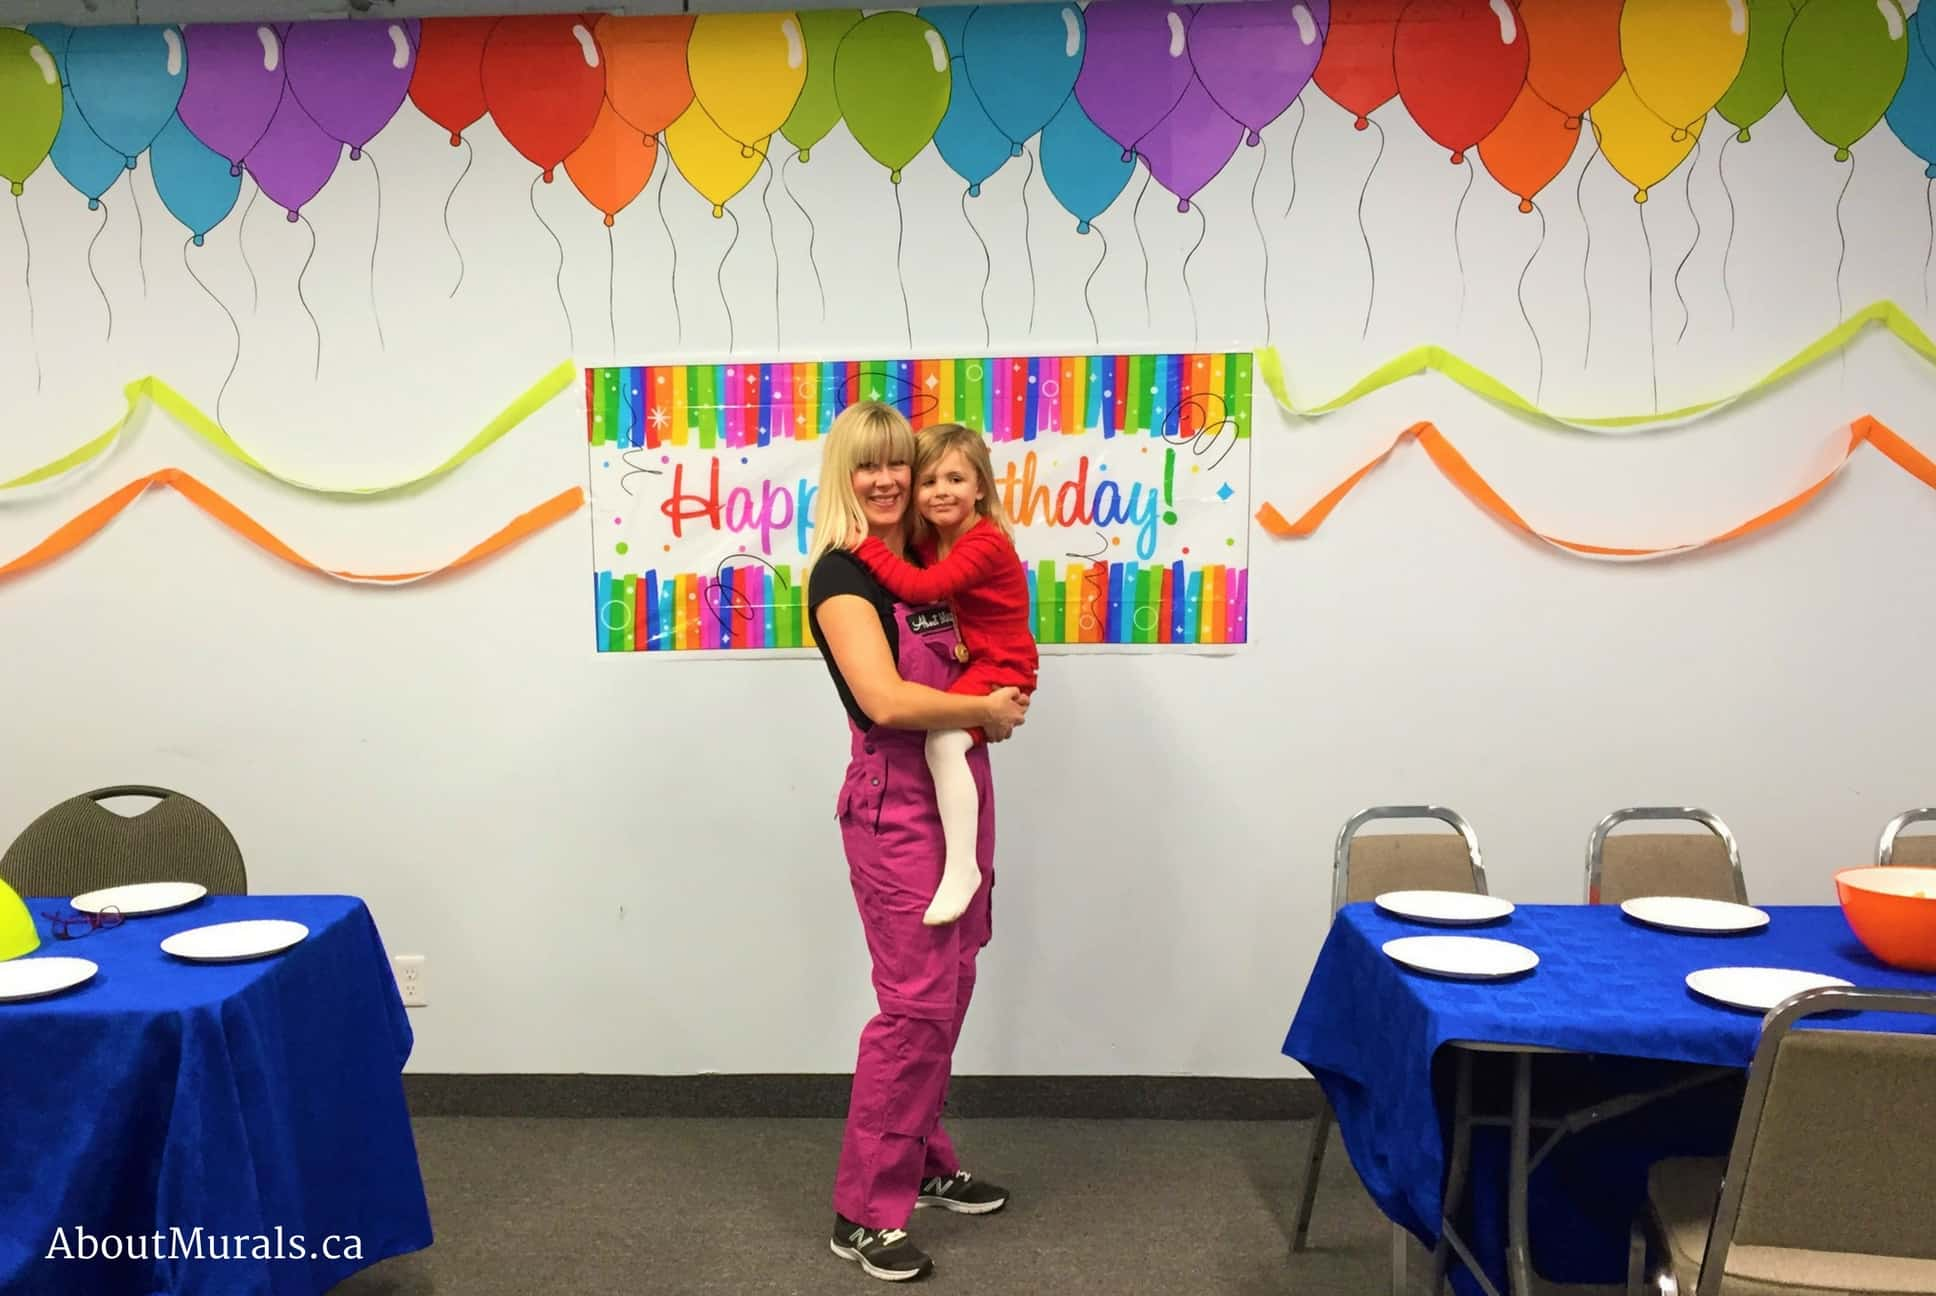 Mural painter Adrienne Scanlan stands under balloons she painted with her daughter